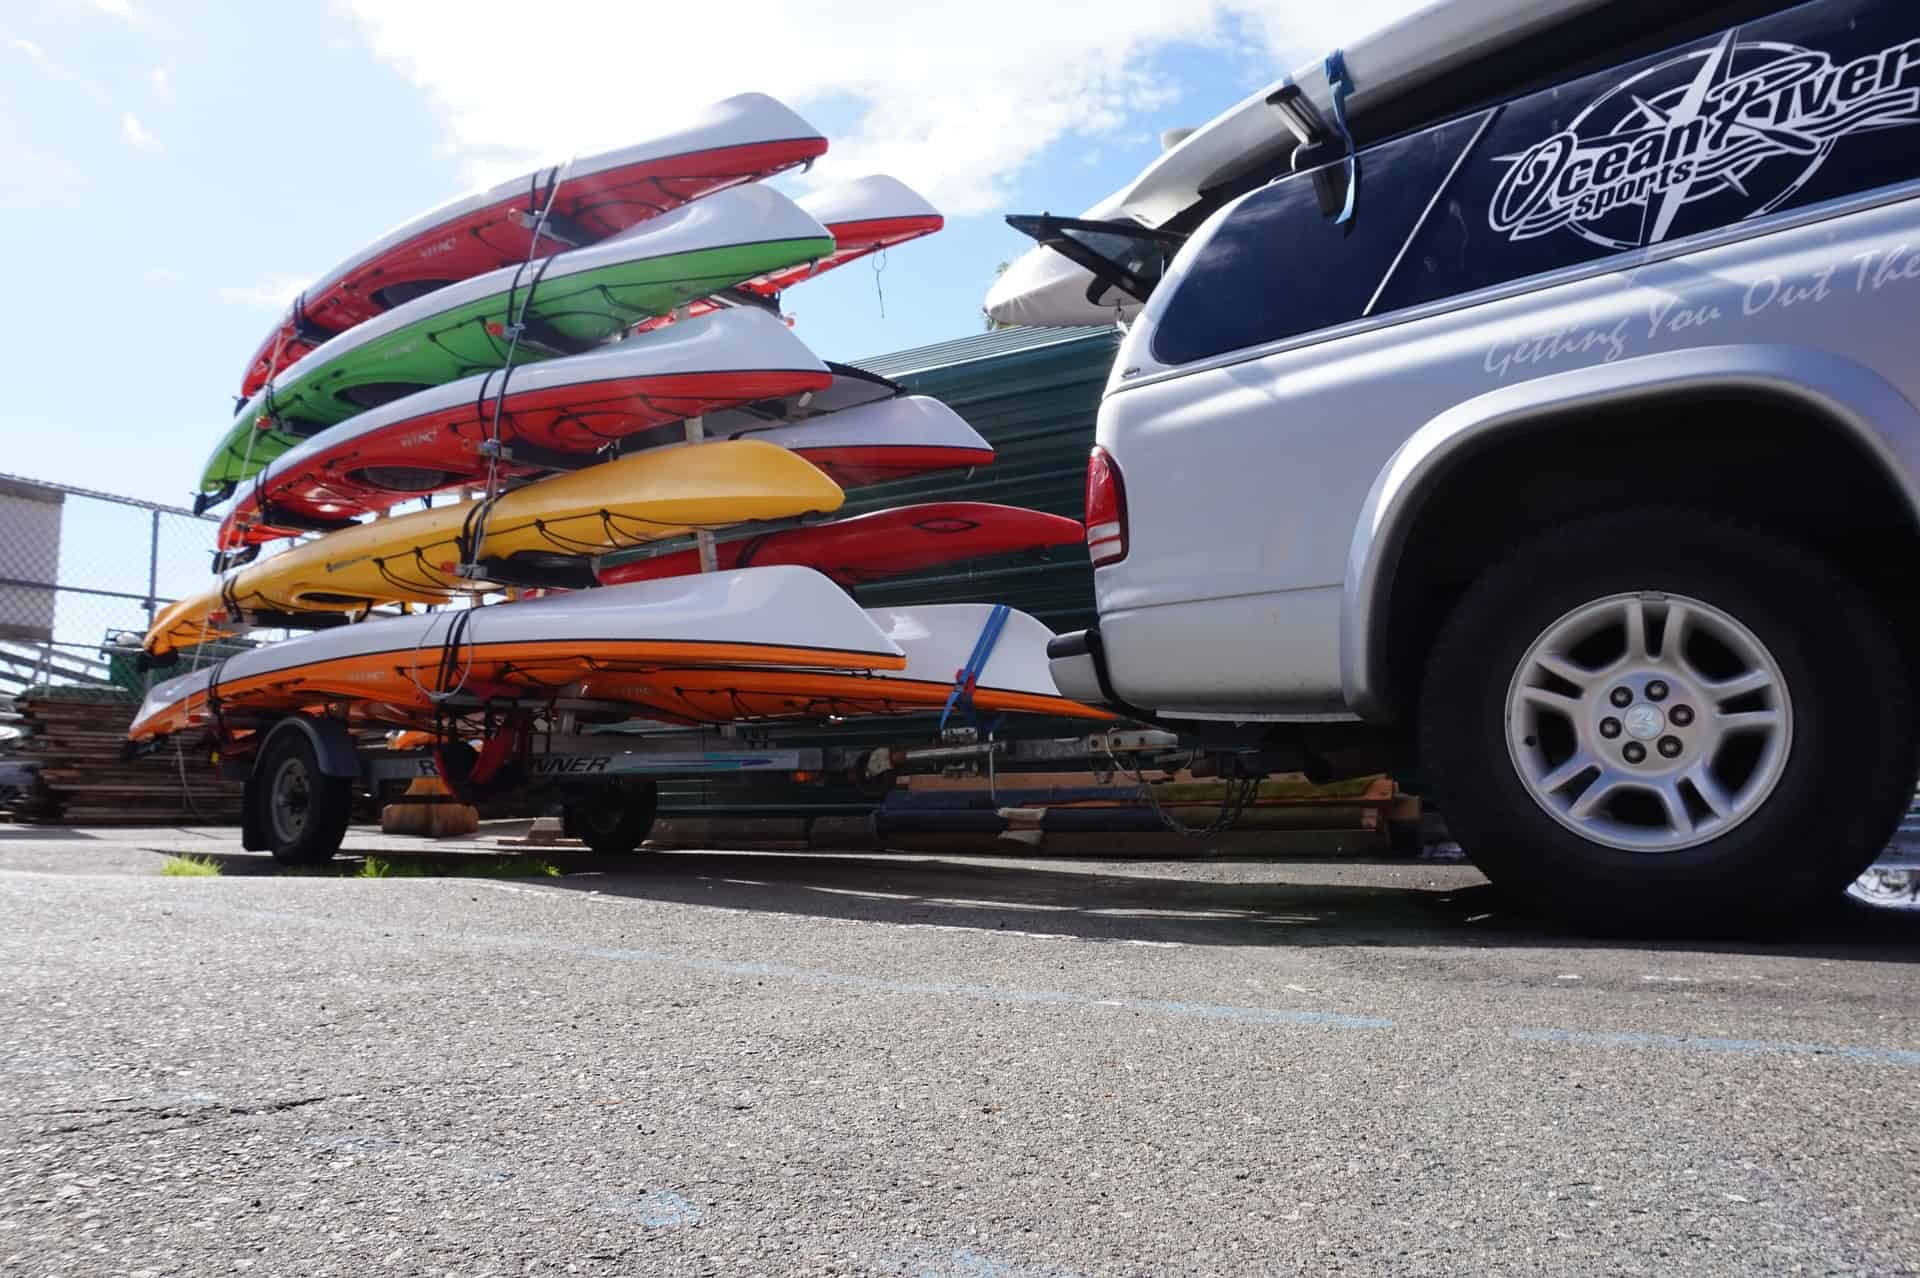 Kayak trailer laden with yaks